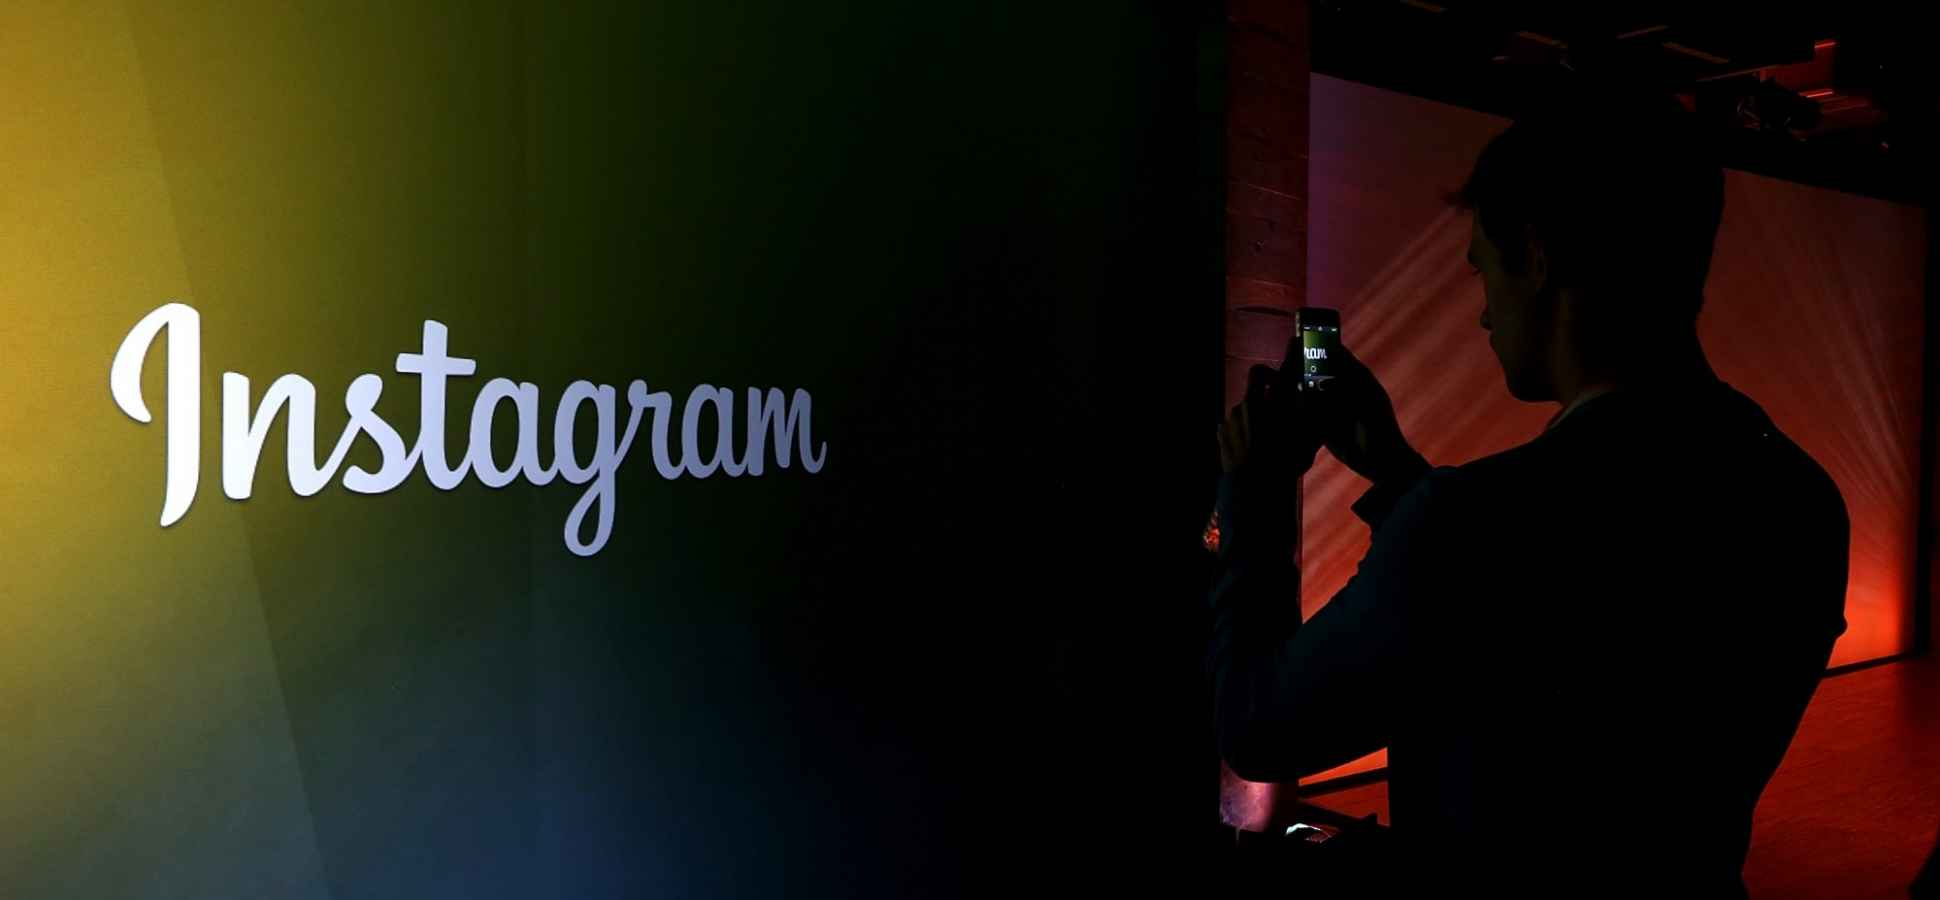 6 Million Instagram Accounts Hacked: How to Protect Yourself